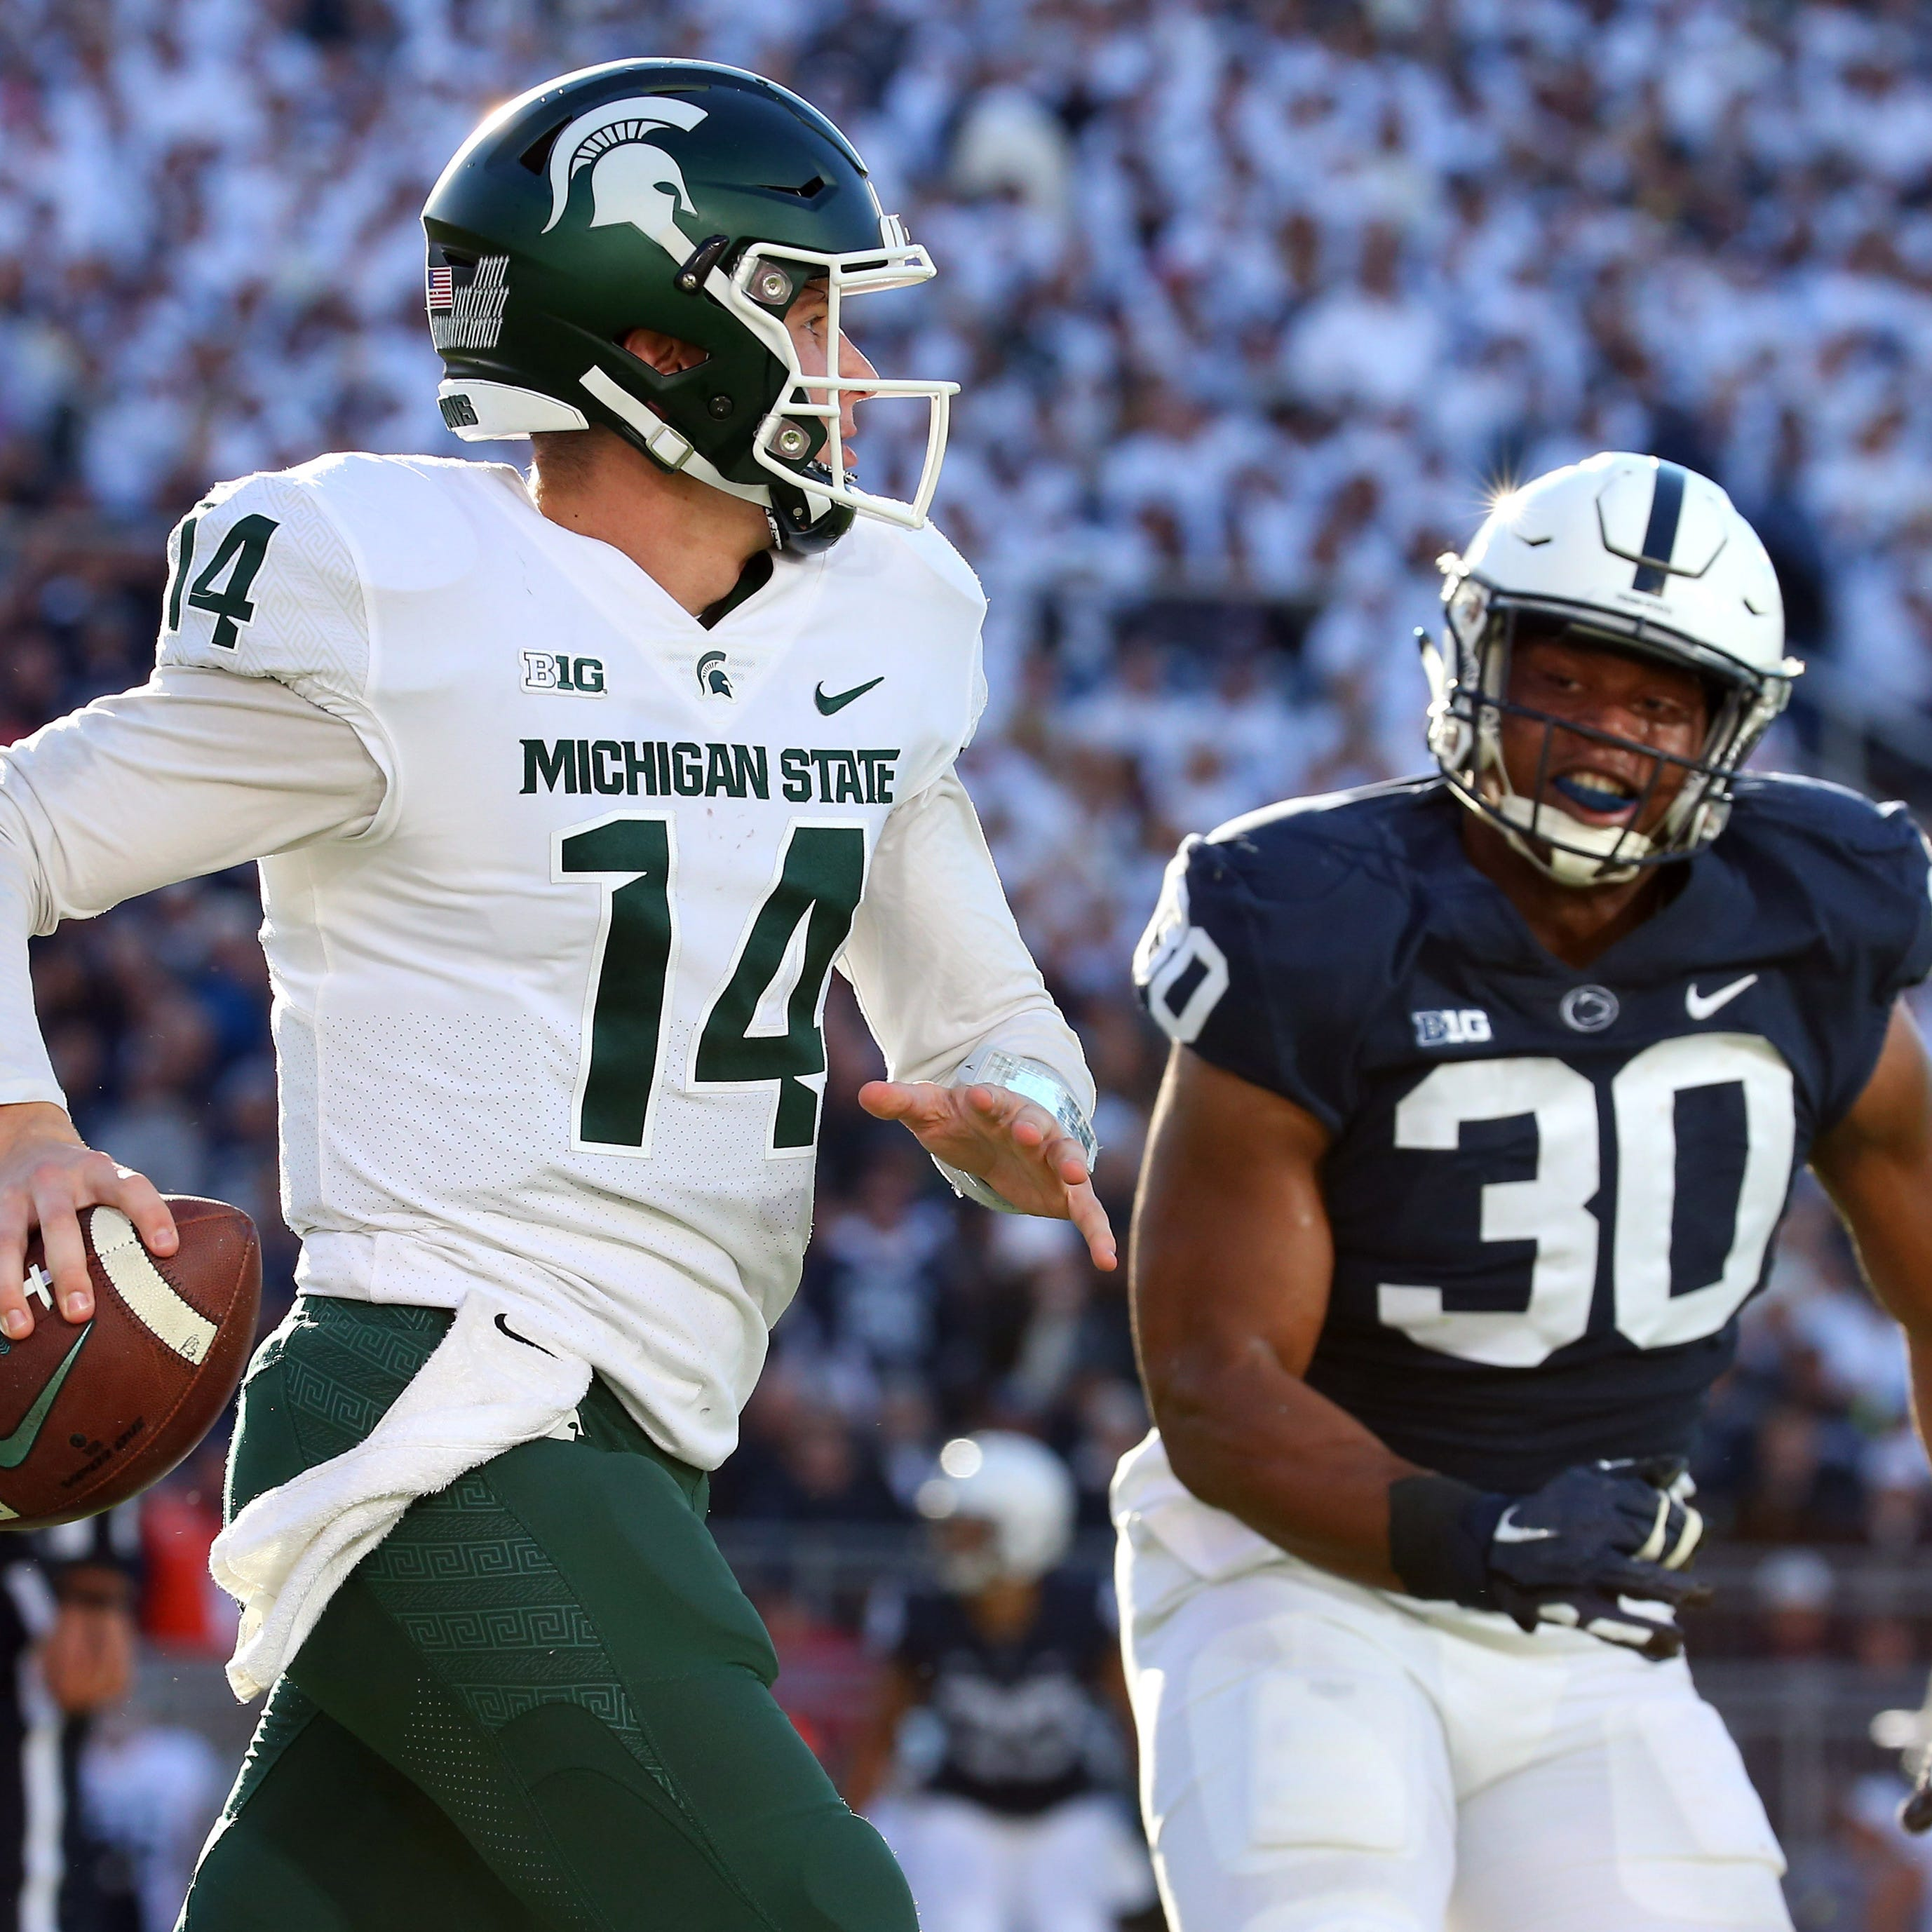 Couch: 3 quick takes on Michigan State's 21-17 win at Penn State